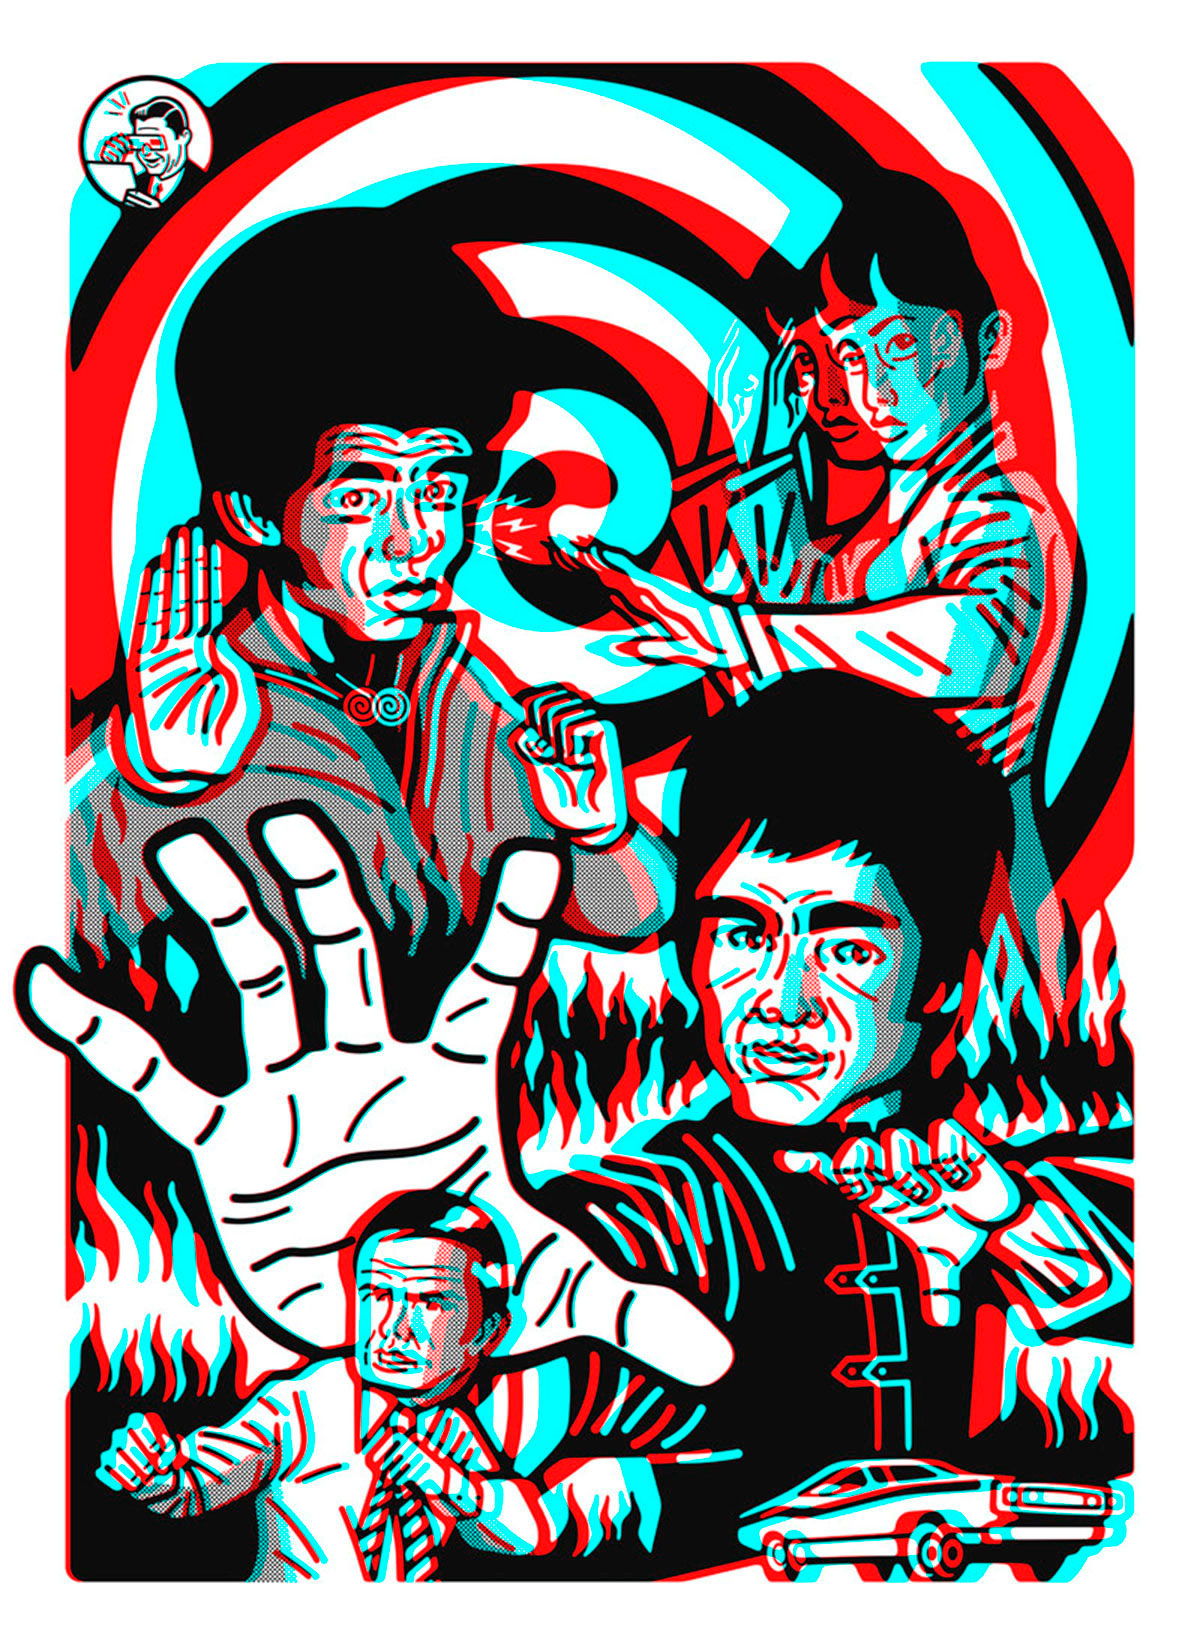 Enter the Dragon 3D. Cortesía del artista